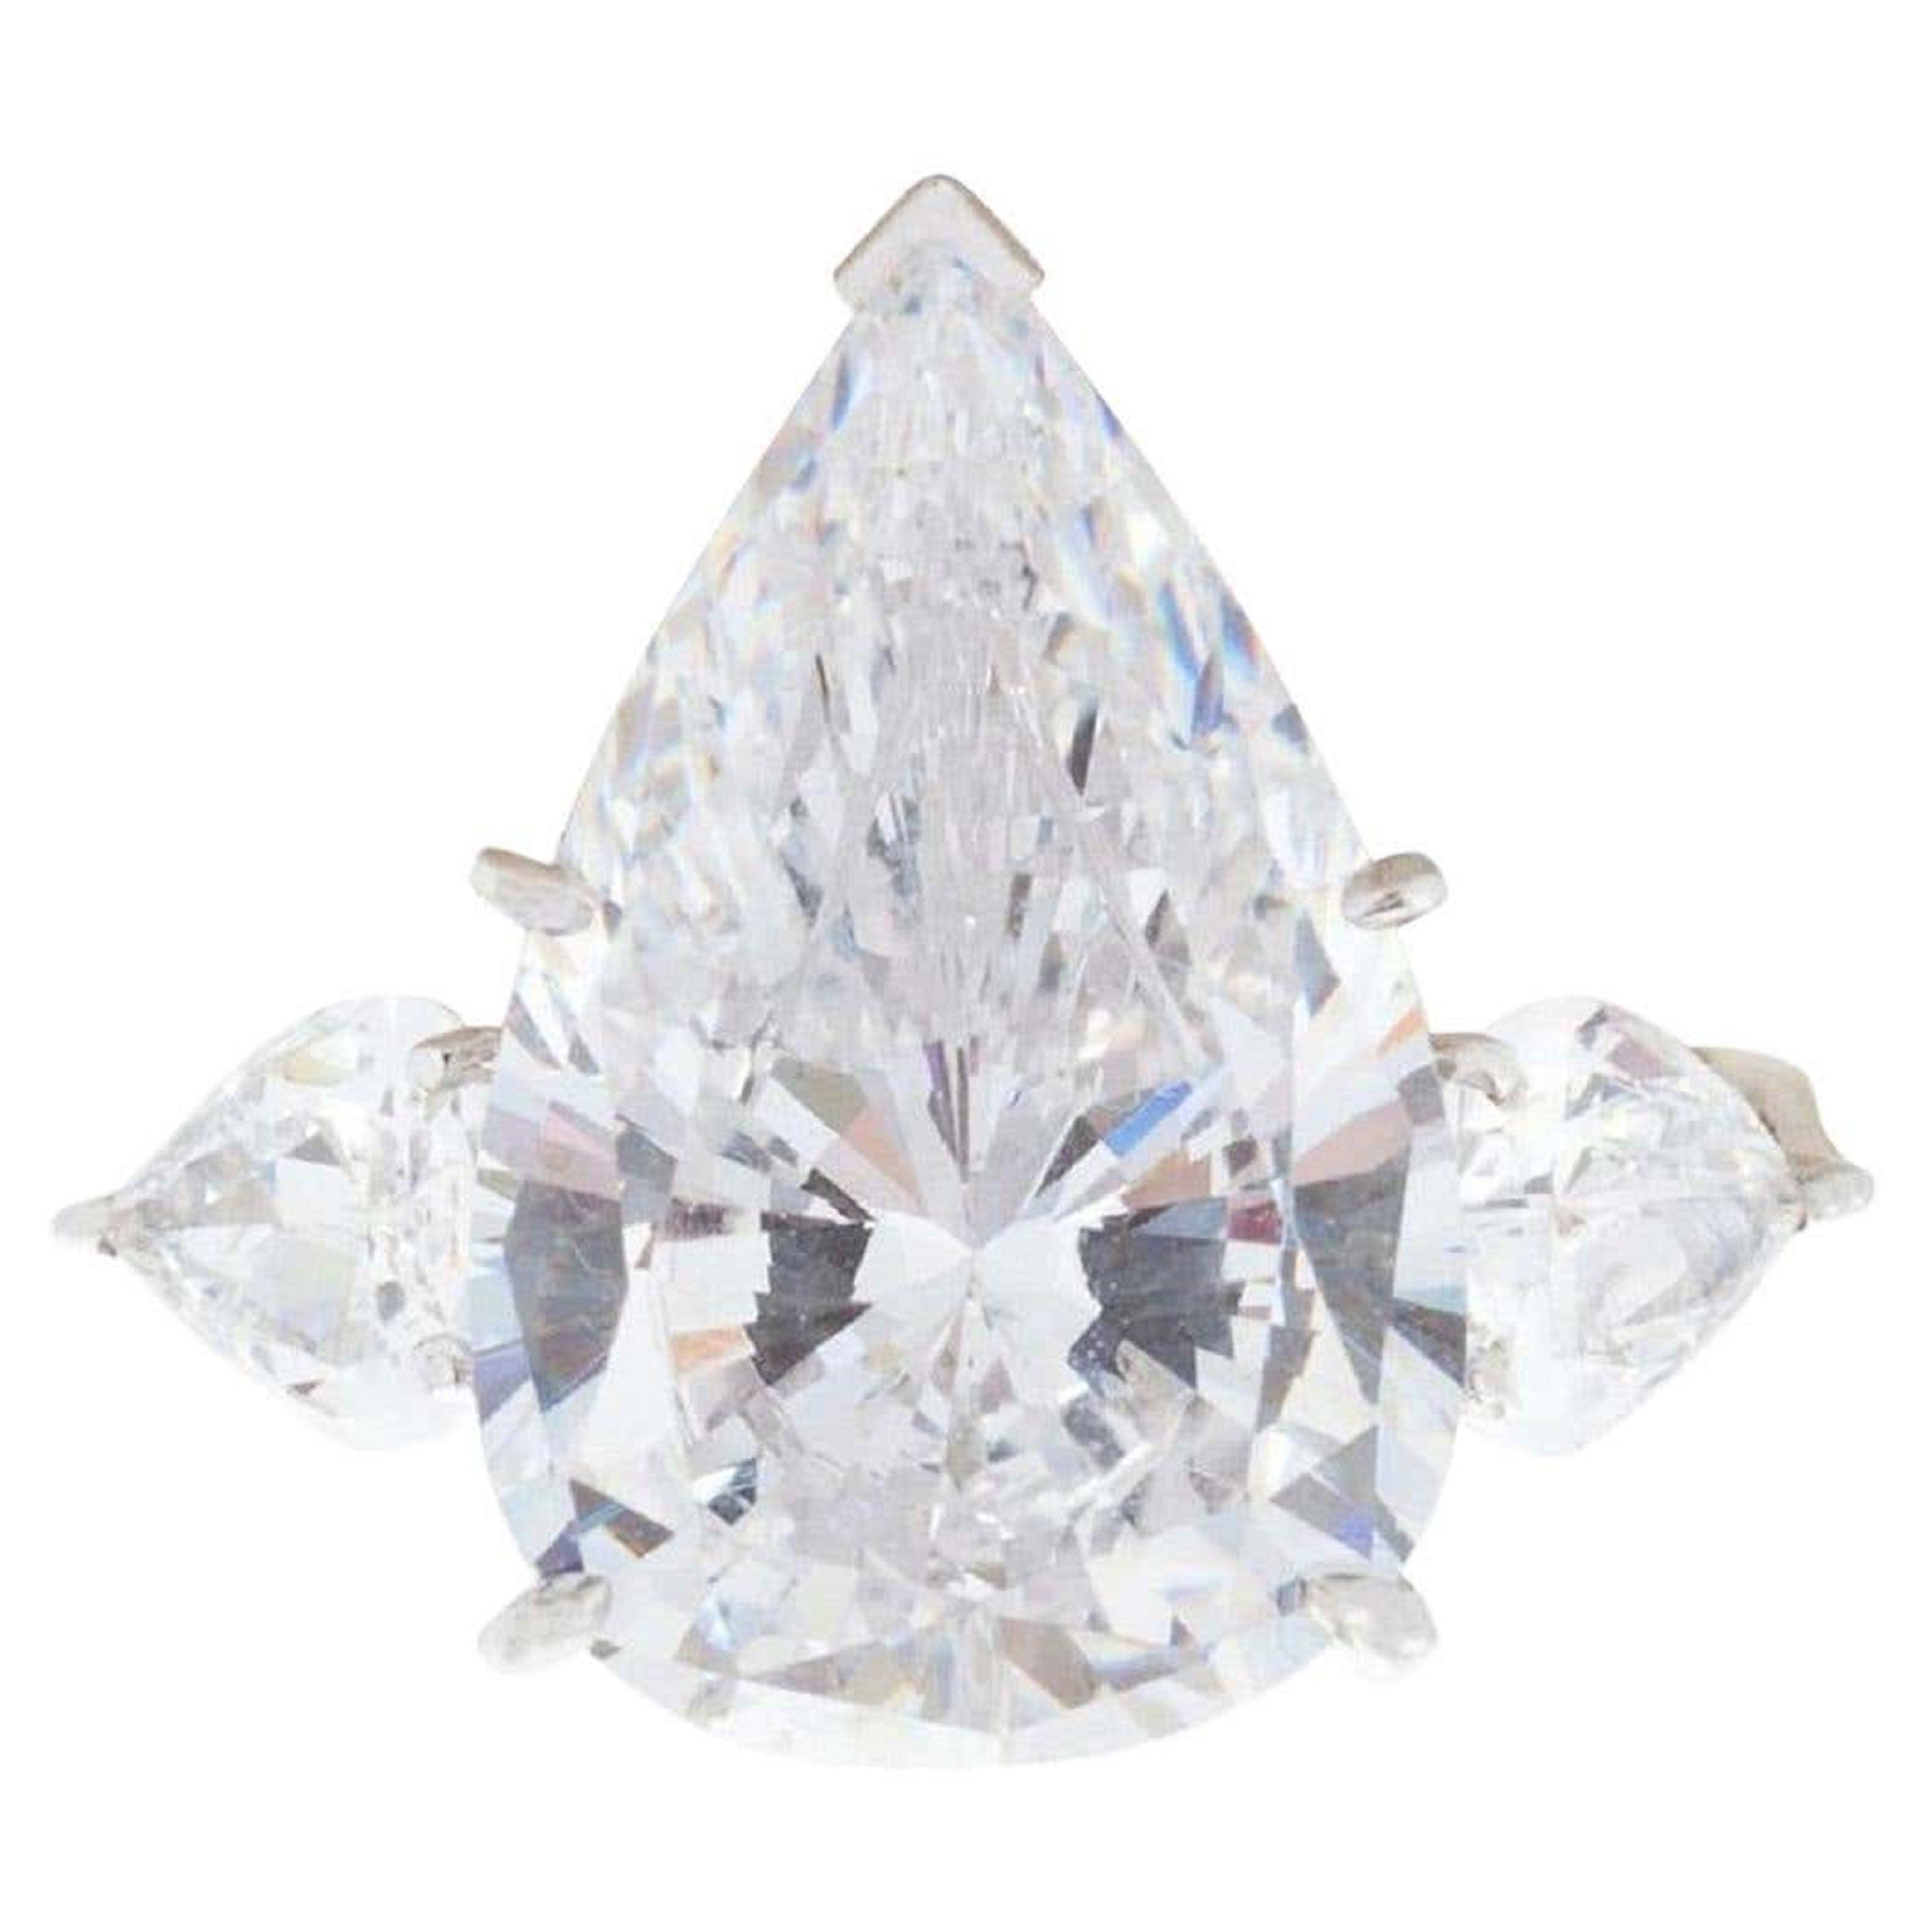 Exceptional Type 2A Flawless GIA Certified 17 Carat Pear Cut Diamond Ring